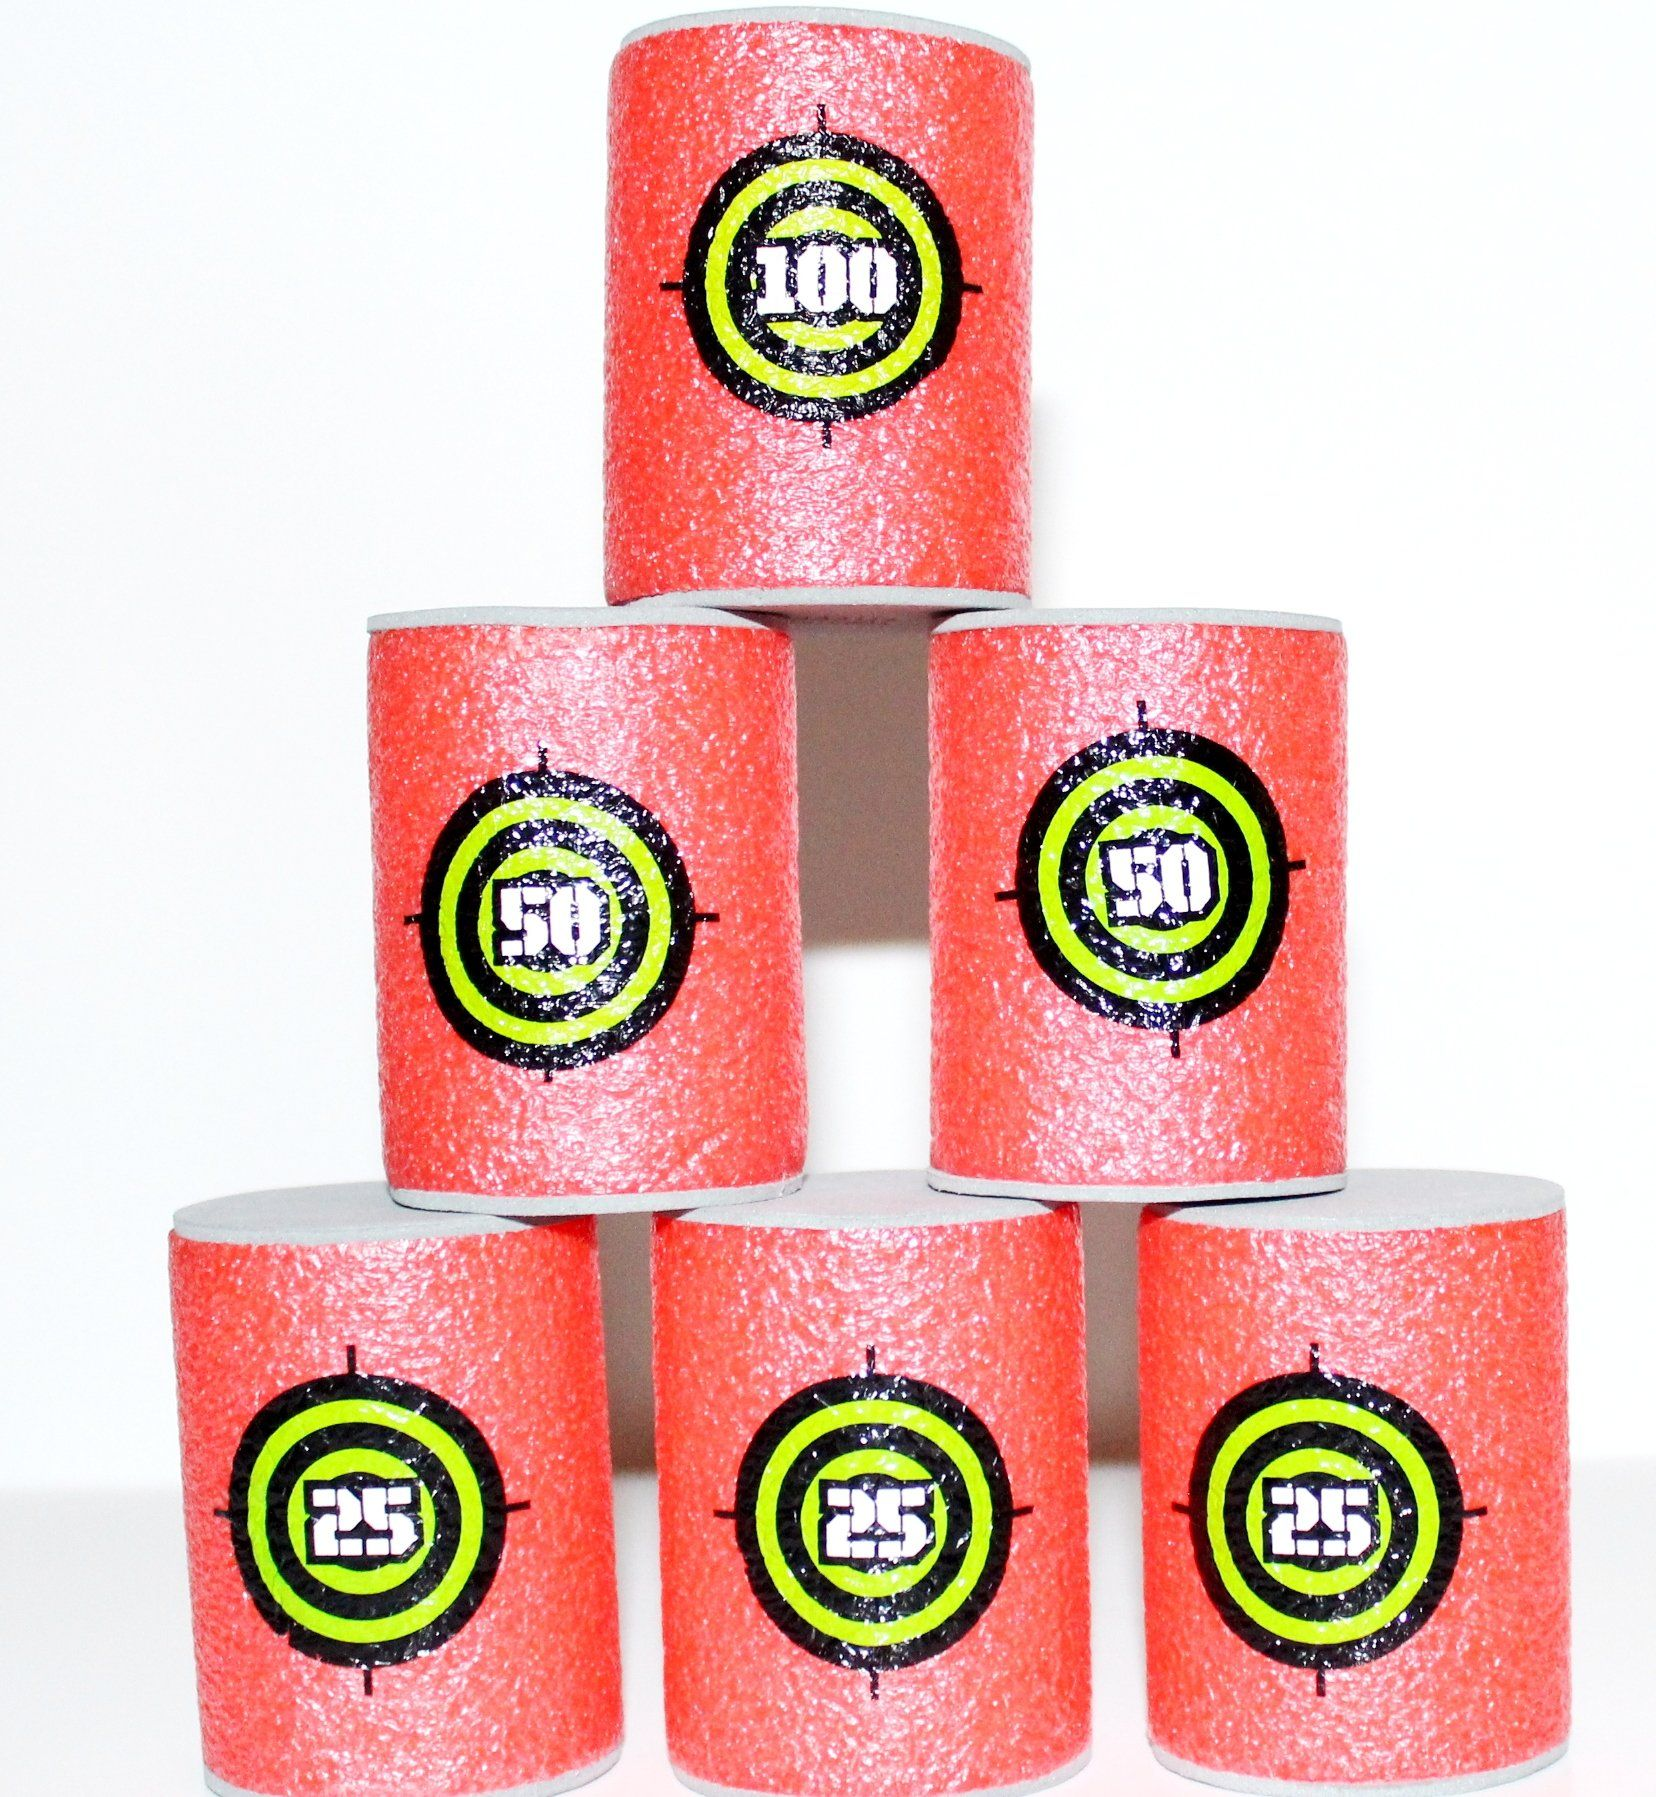 Soft Foam Target Cans 6 Pack, Compatible With Nerf Guns, Nerf